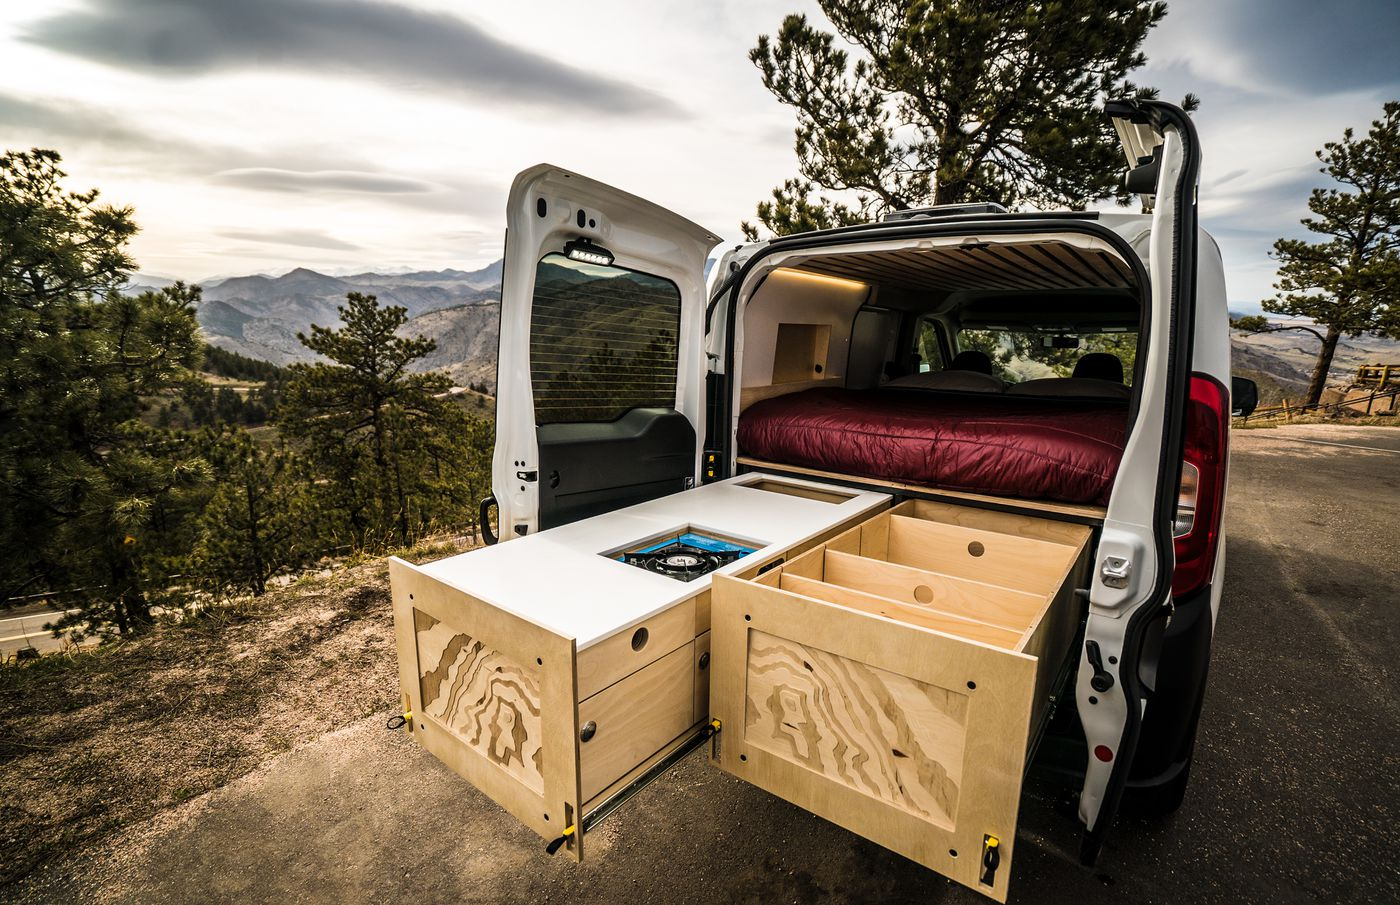 DIY camper van: 5 affordable conversion kits you can buy now